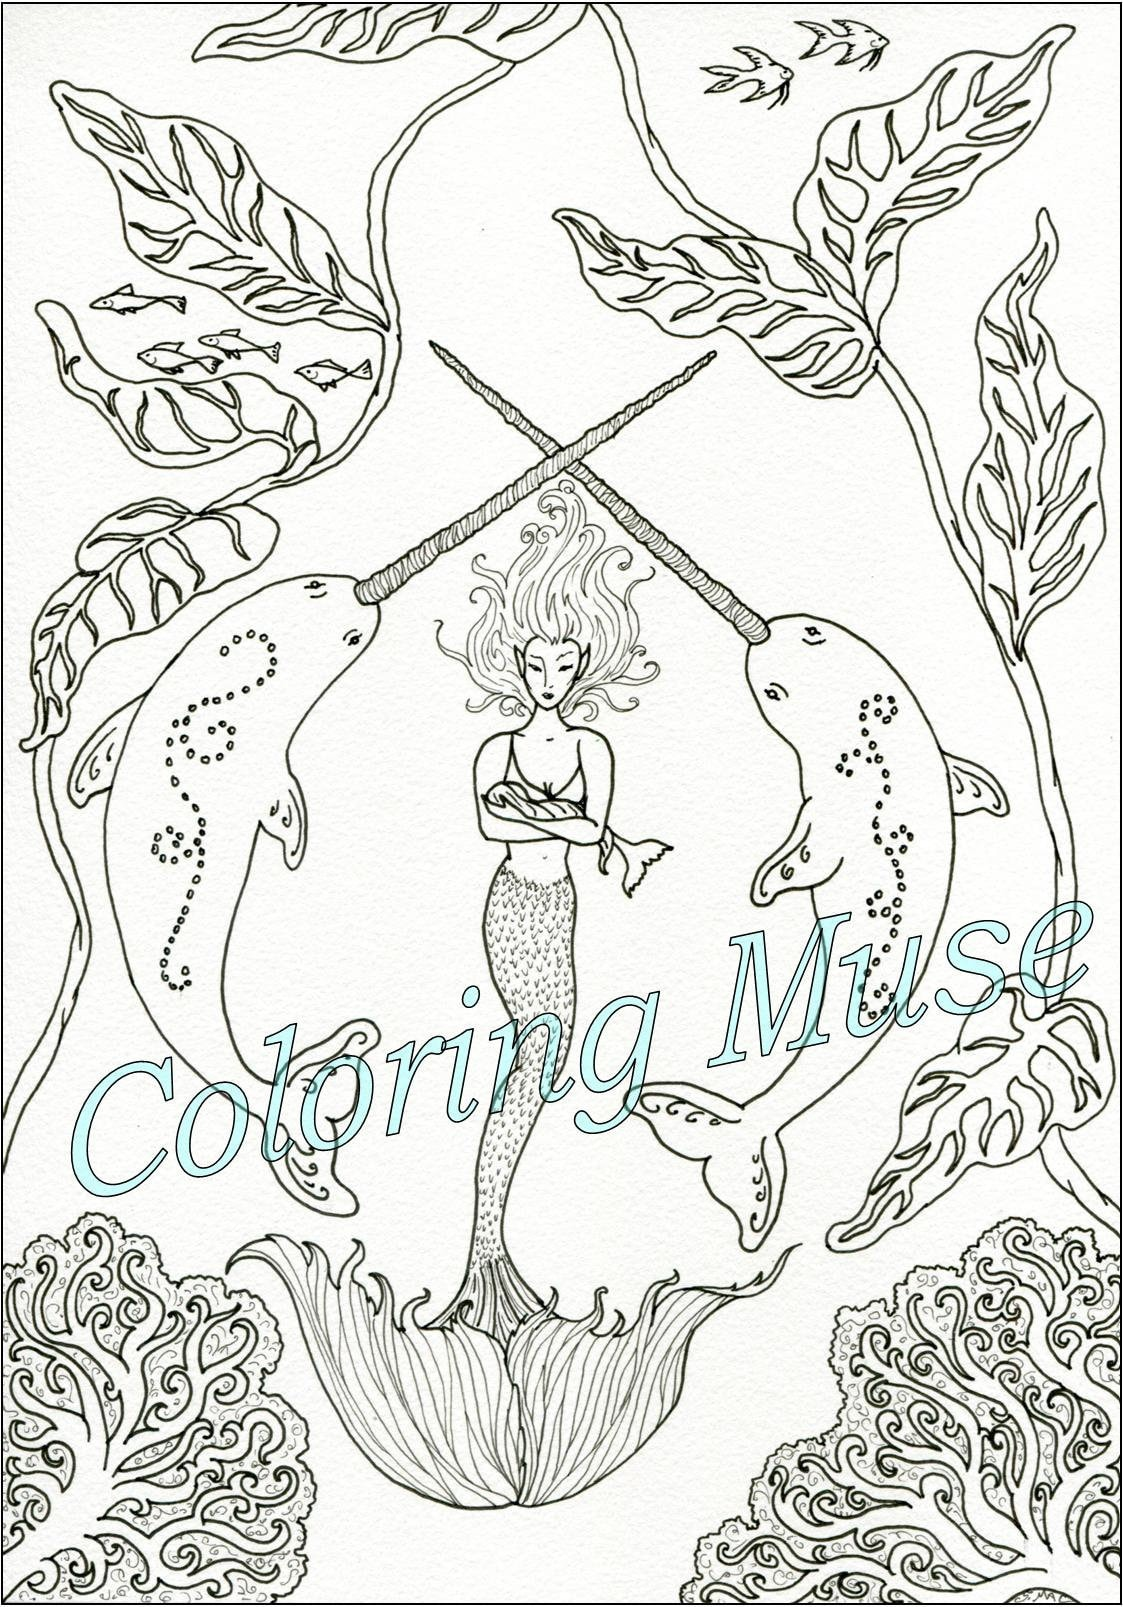 Narwhal coloring page mermaid coloring page mythical creatures printable coloring page